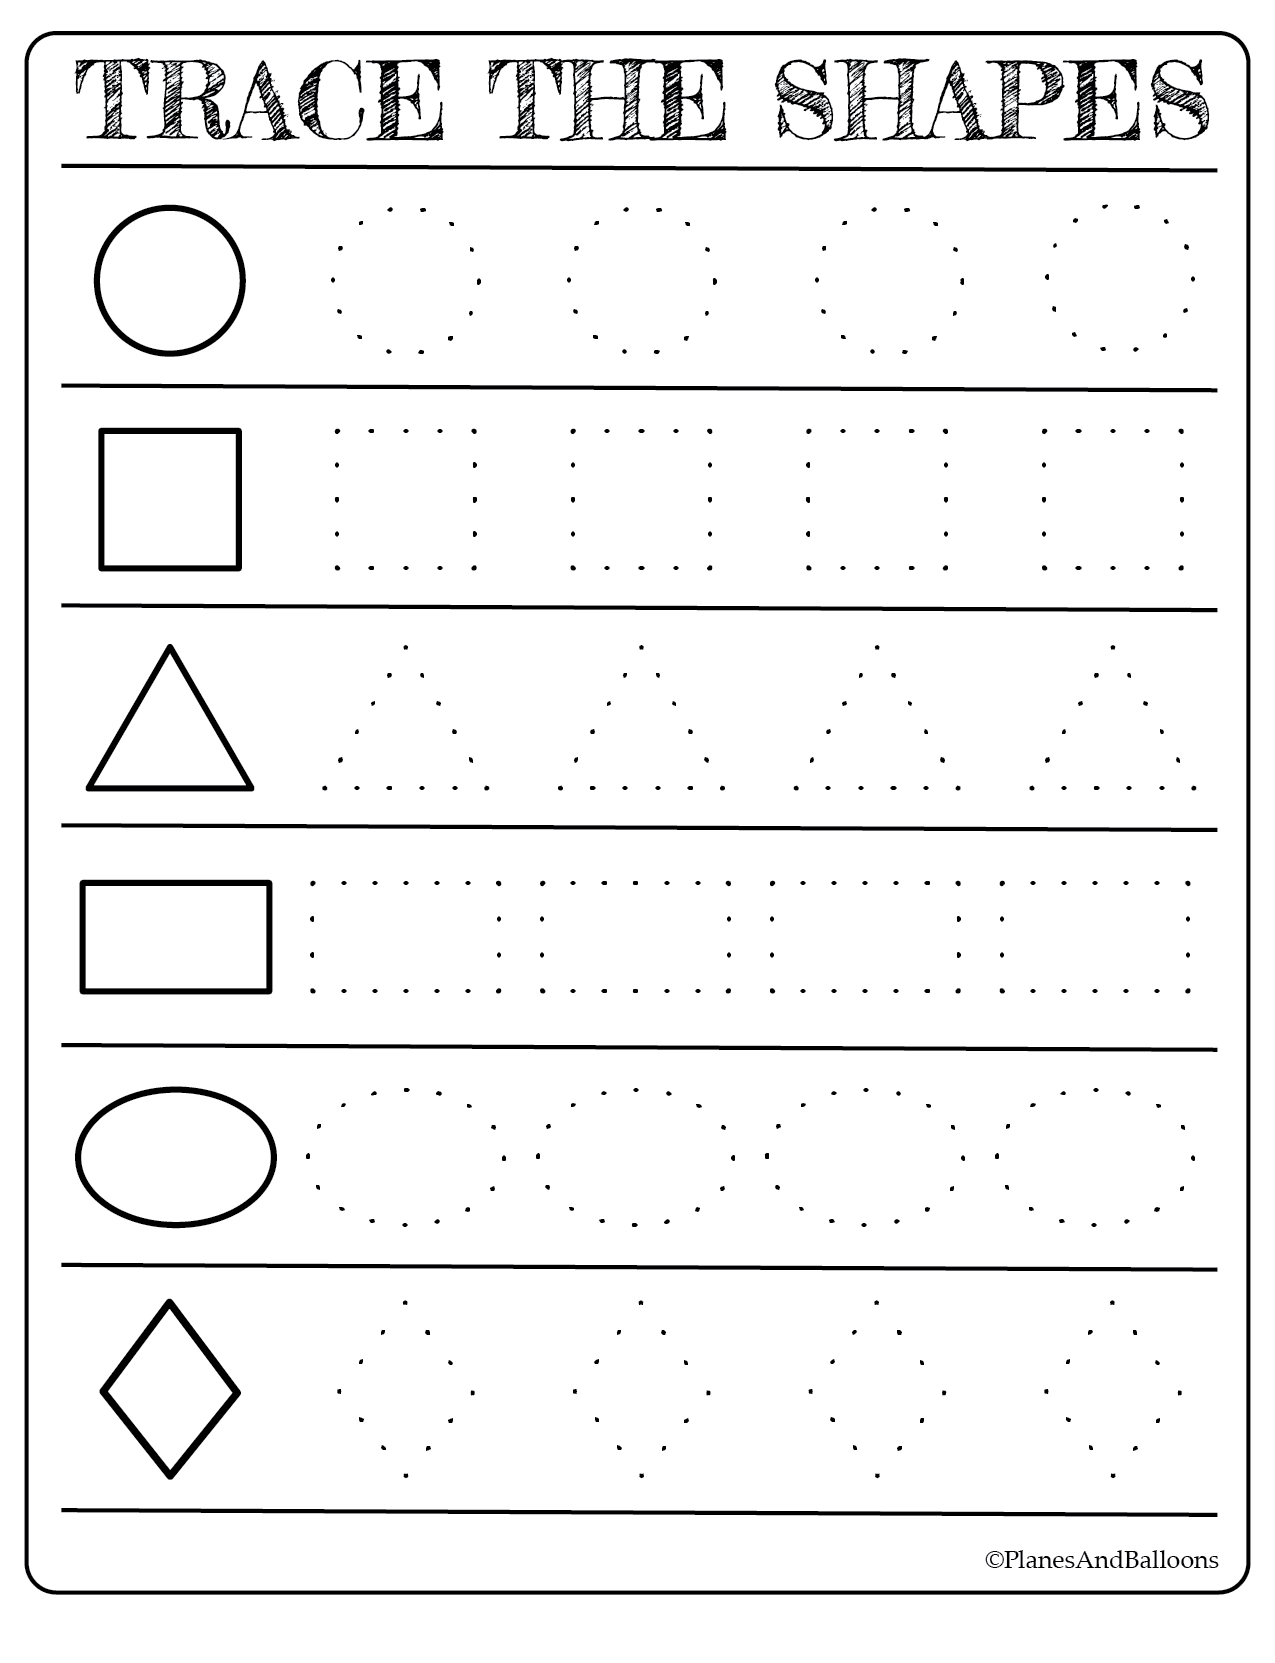 Free Printable Shapes Worksheets For Toddlers And Preschoolers | Free Printable Toddler Worksheets